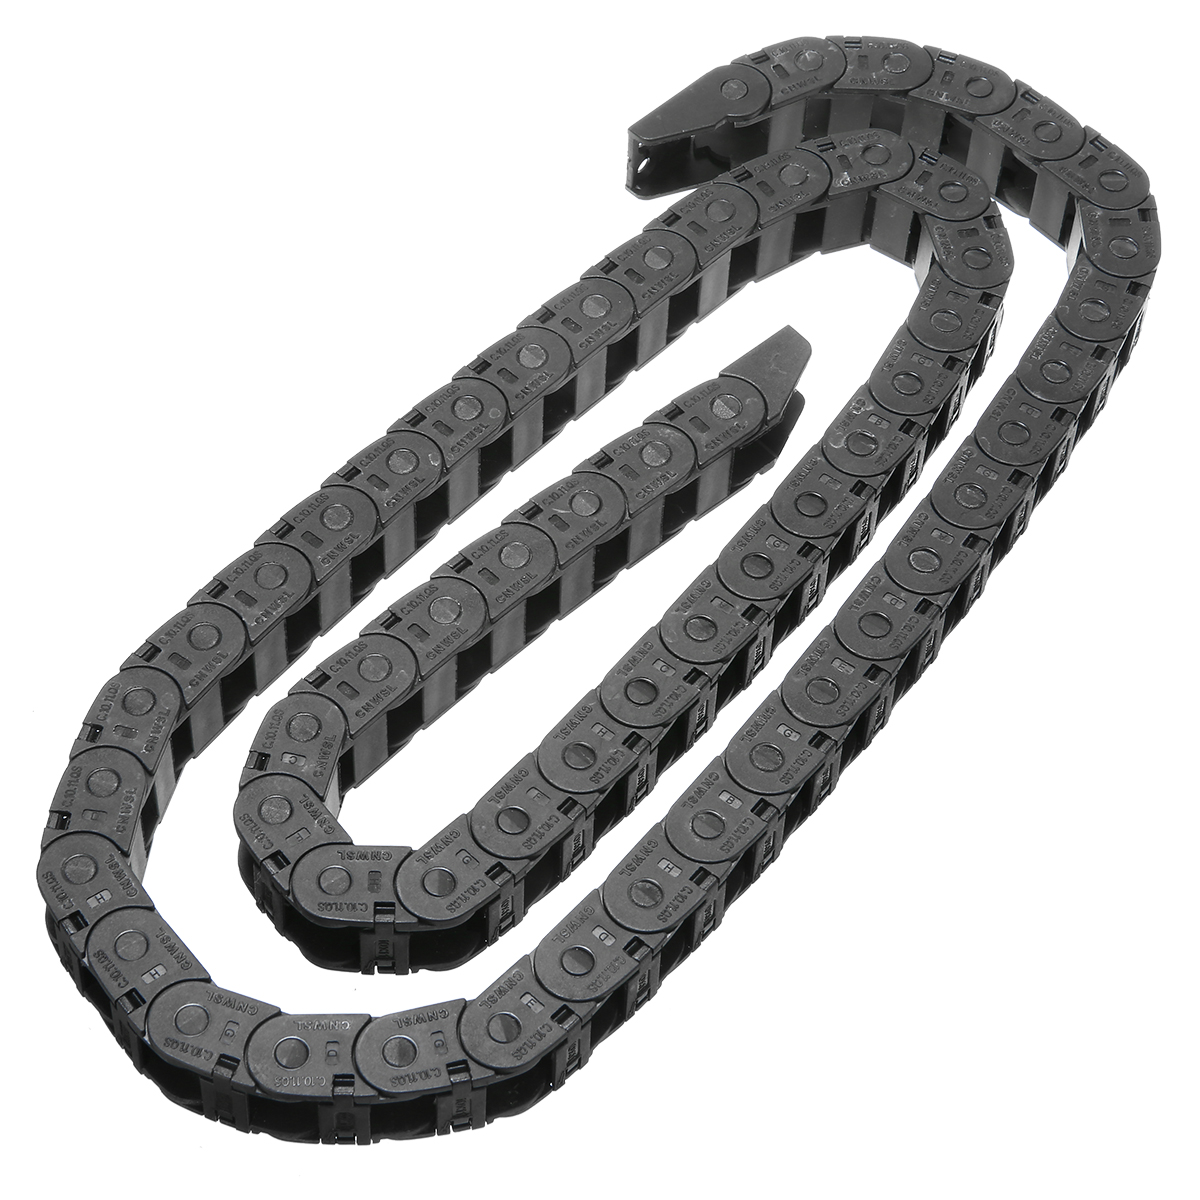 10x11mm 1M Nylon Cable Carrier Drag Chain Nested Wire Carriers Transmission Tank Chains Towline for CNC Router Machine Tools